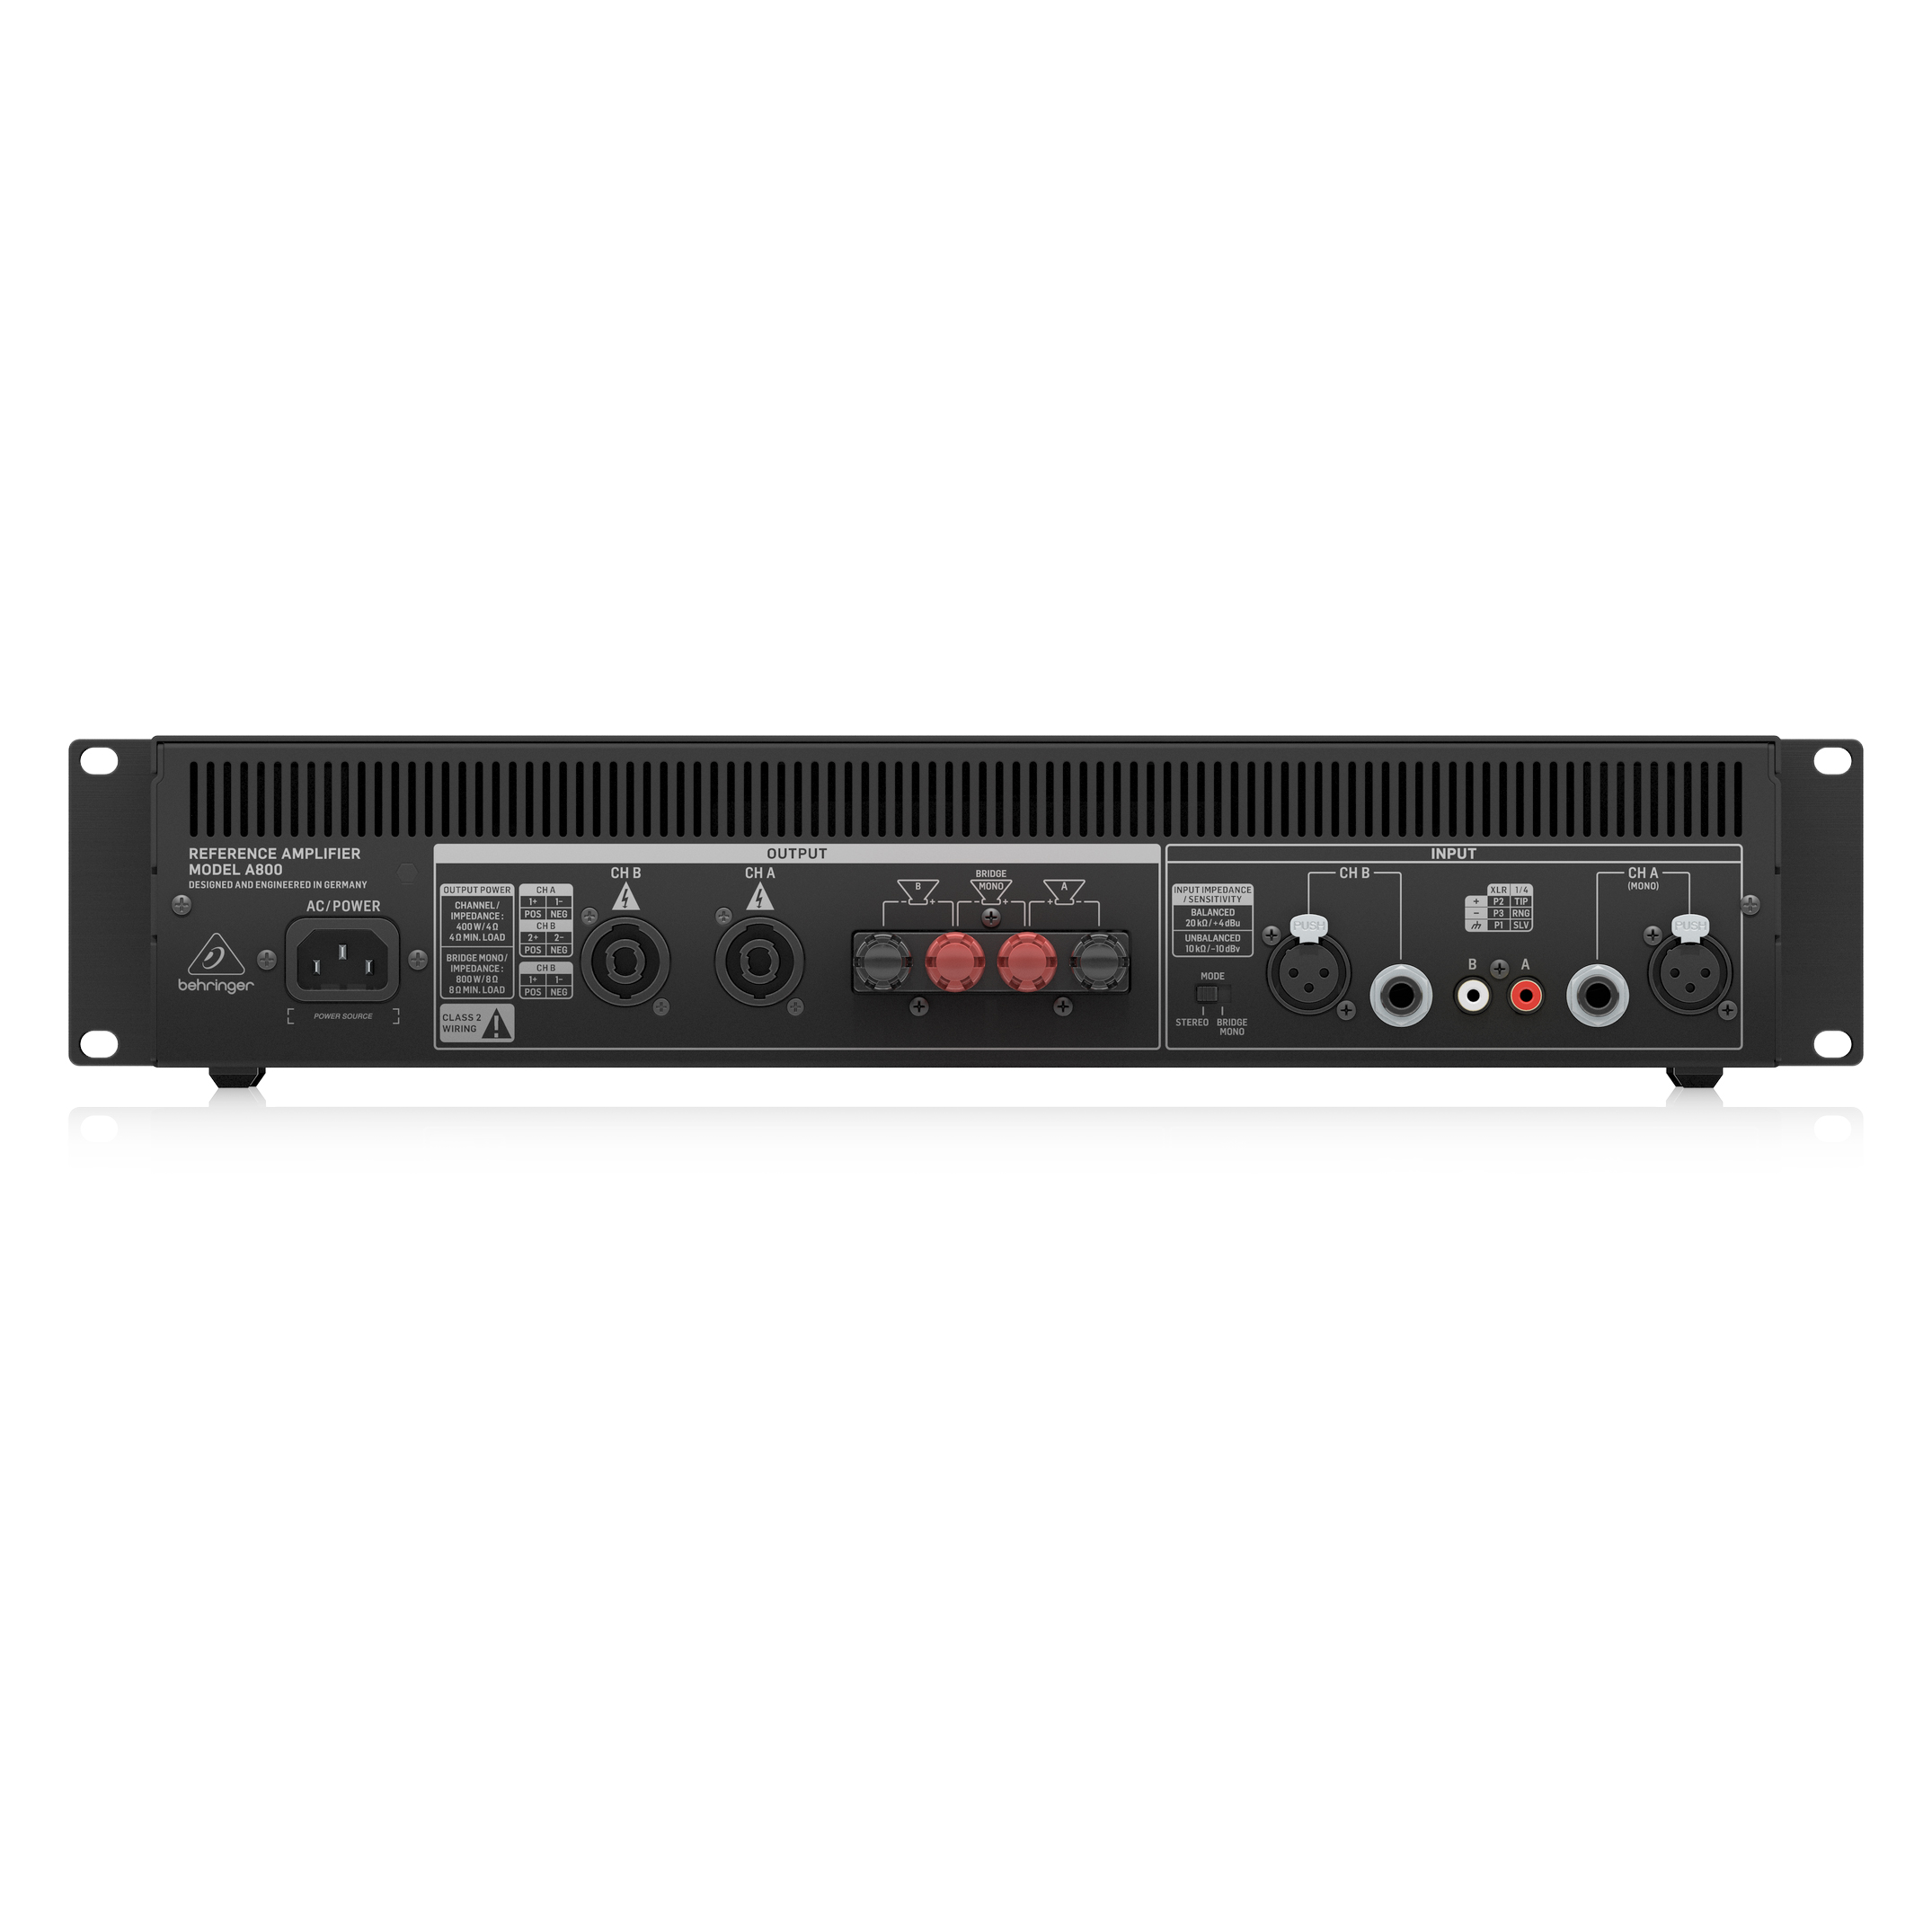 buy online Behringer NX1000d with free home delivery